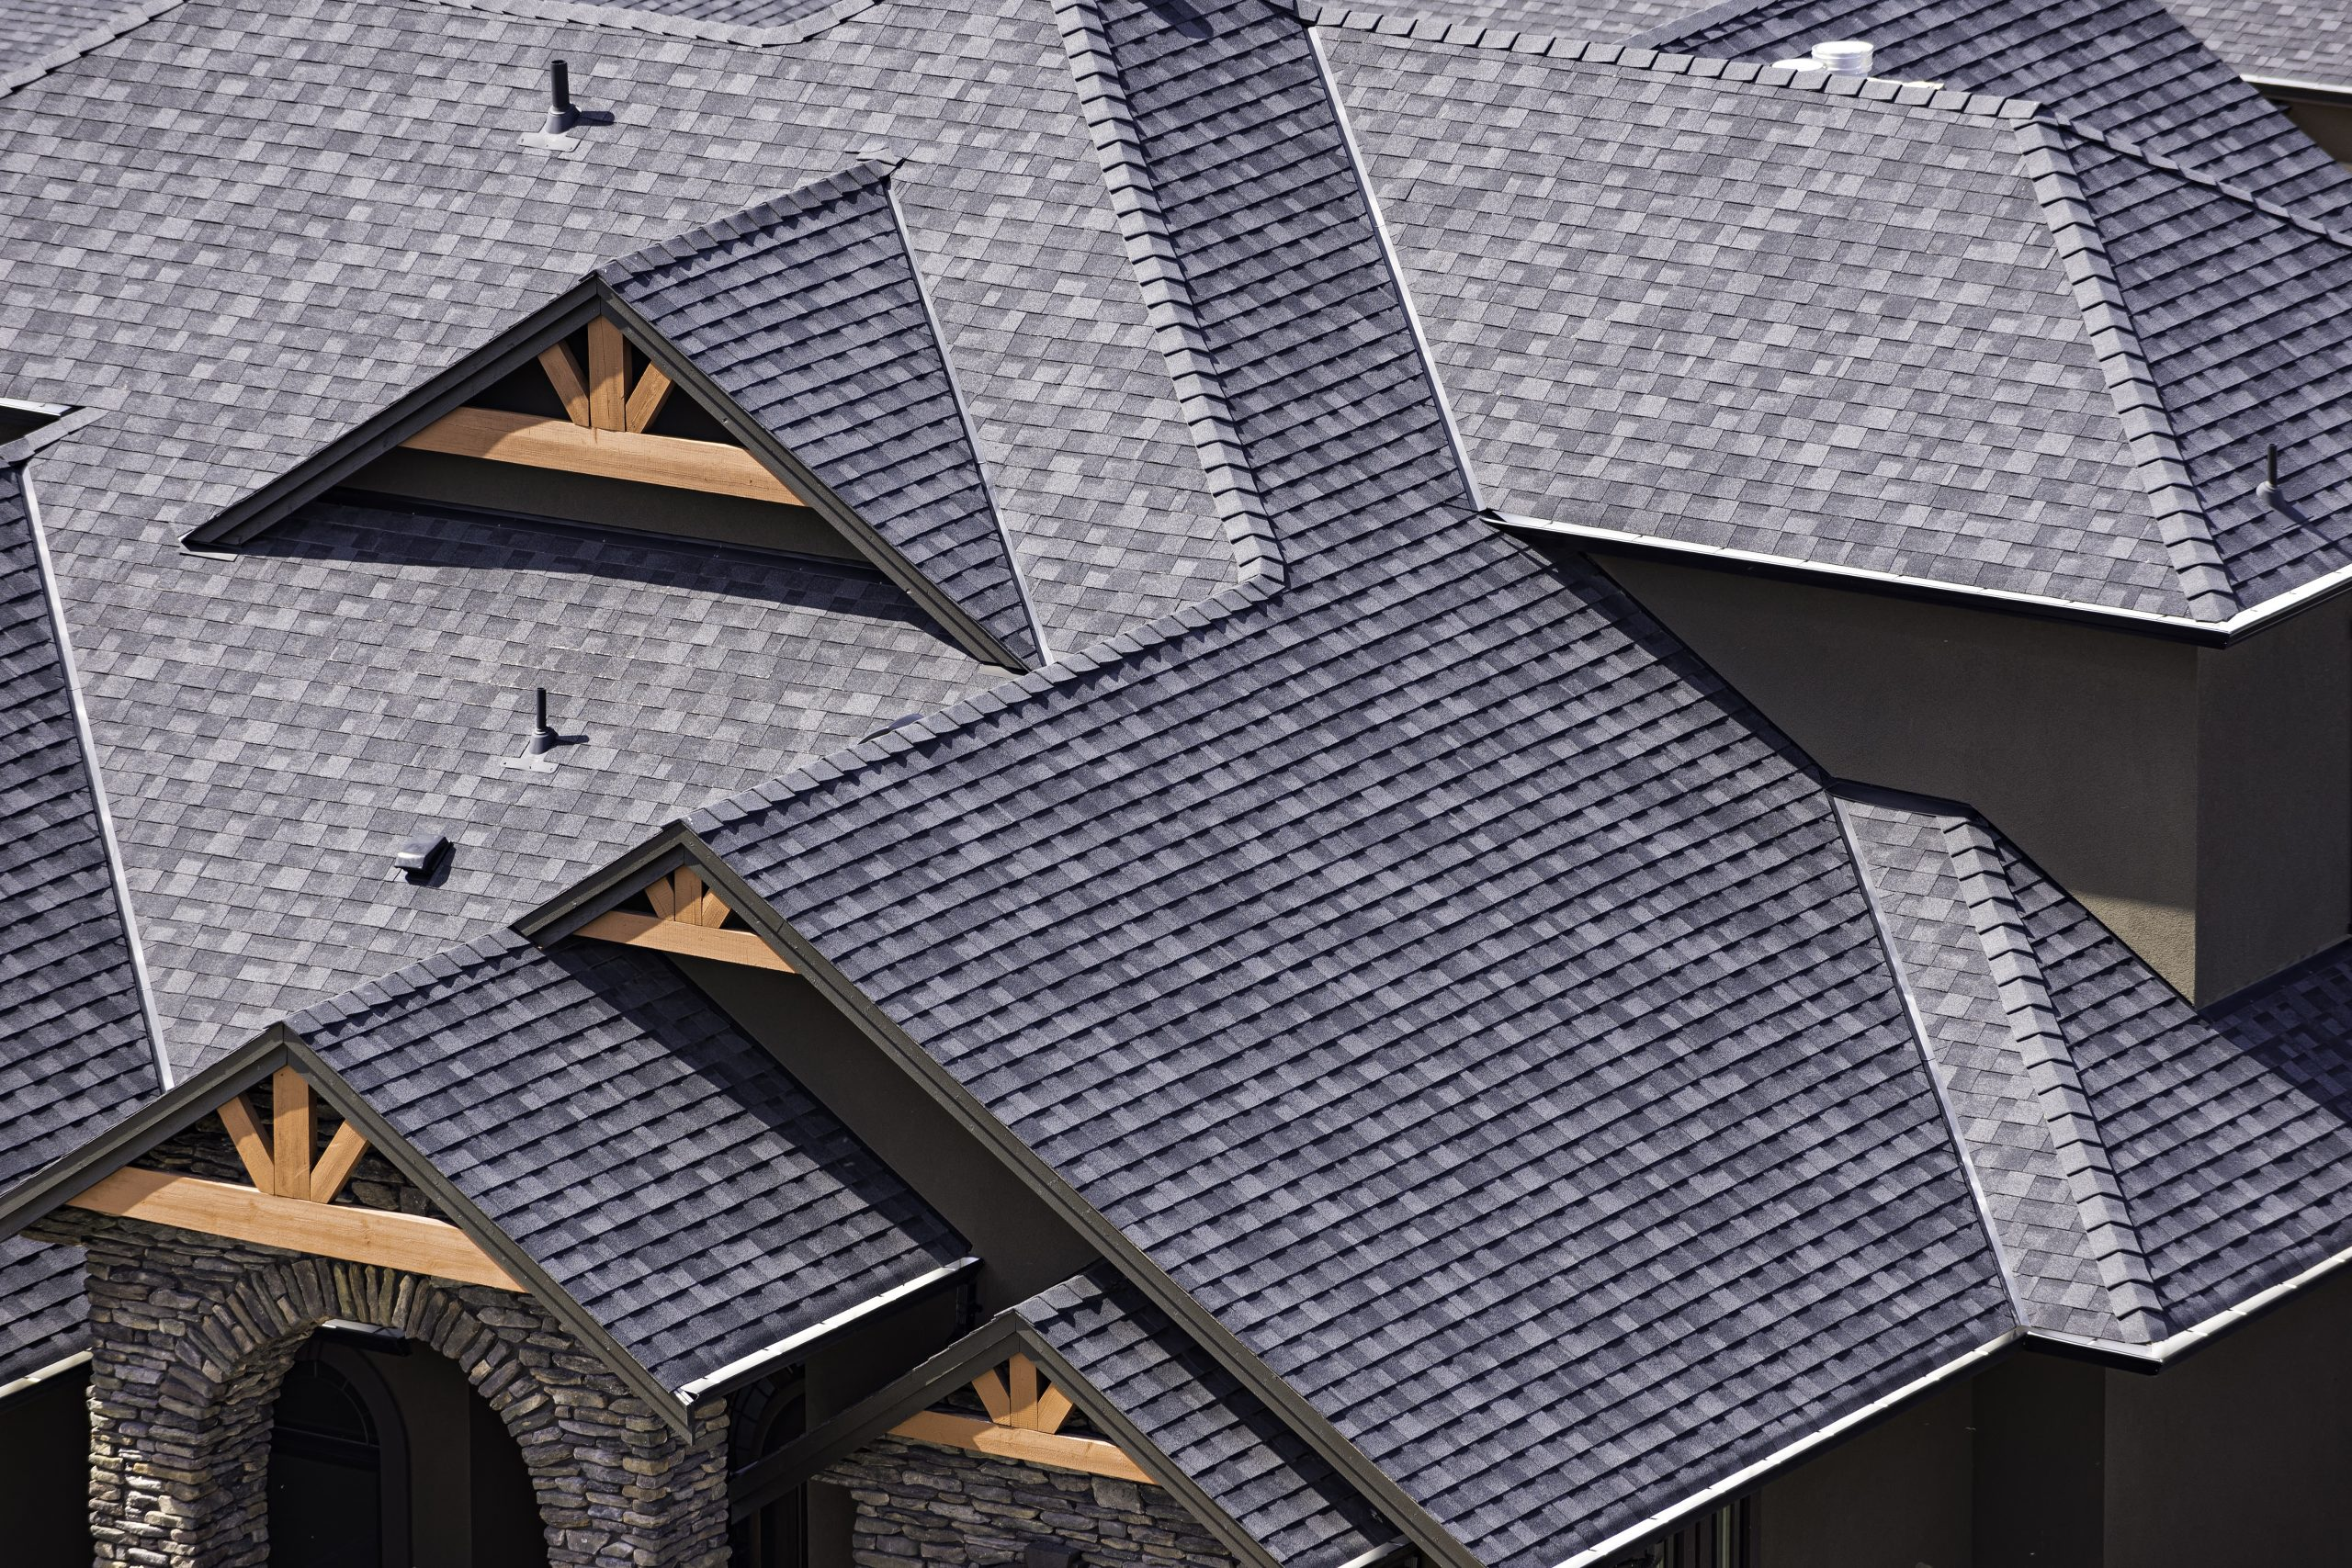 Roofing 101: 4 Tips For Choosing The Best Roof Colour